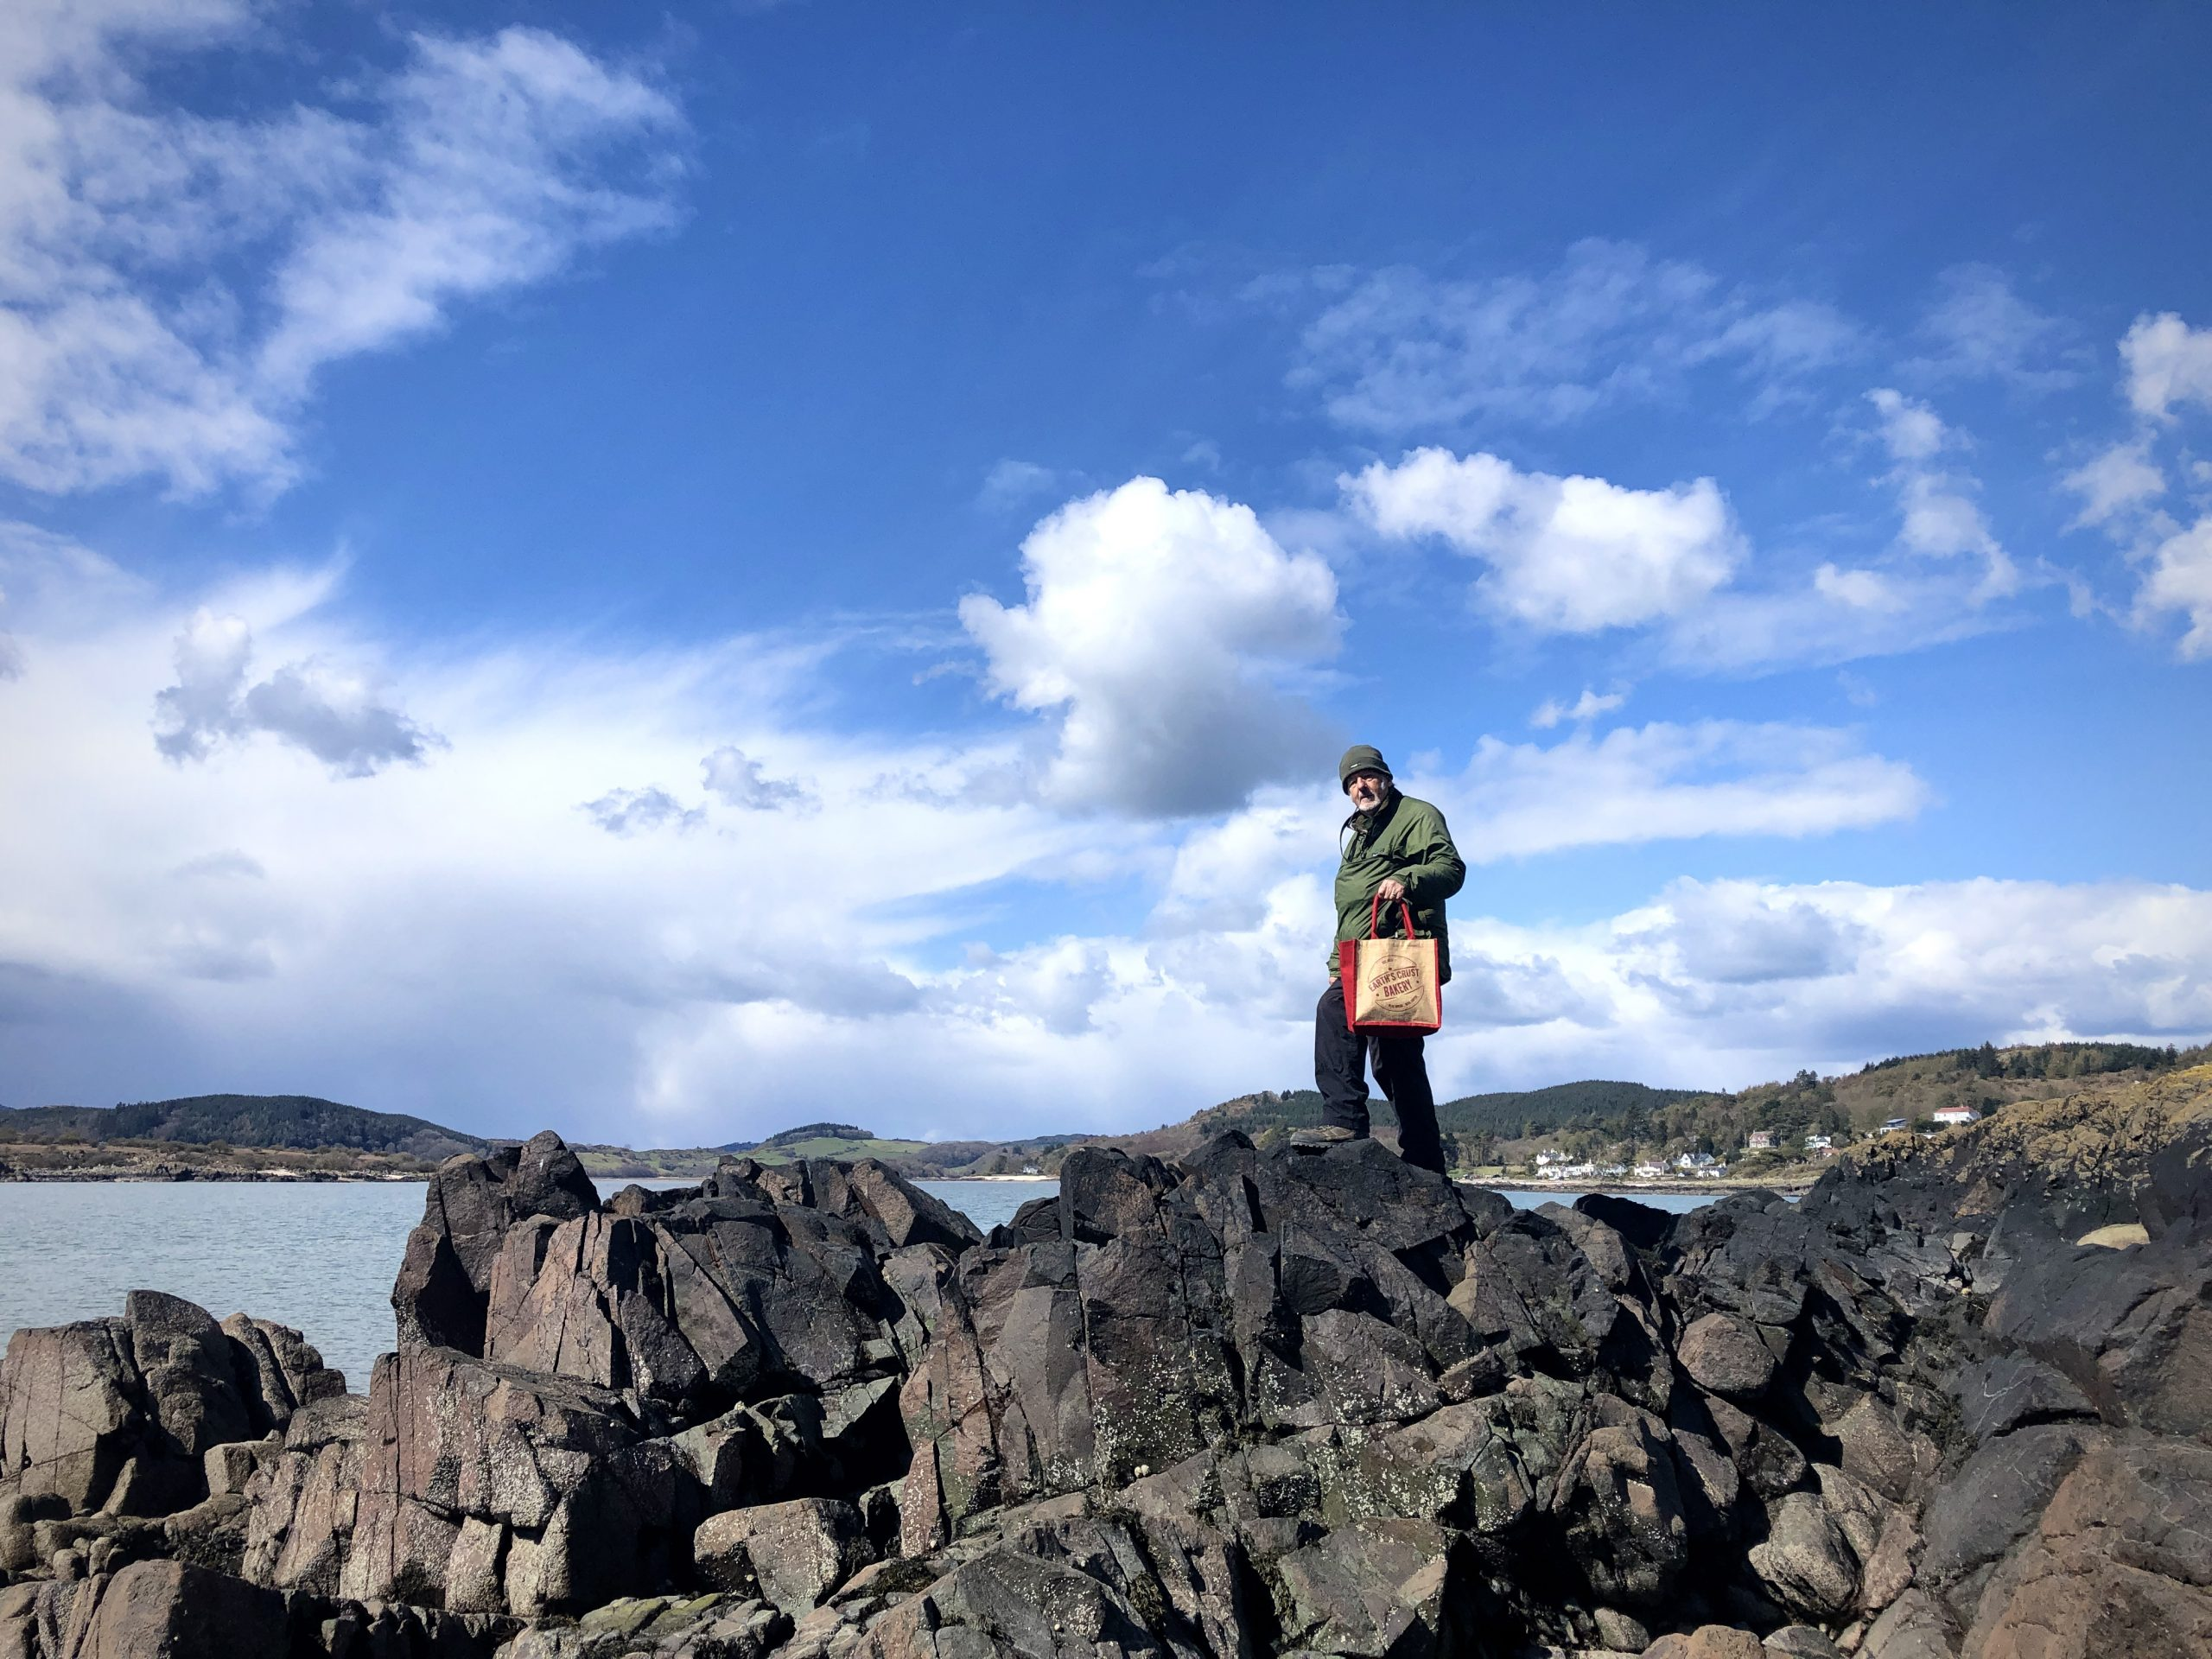 A man standing on the rocks at Rockcliffe with a shopping bag